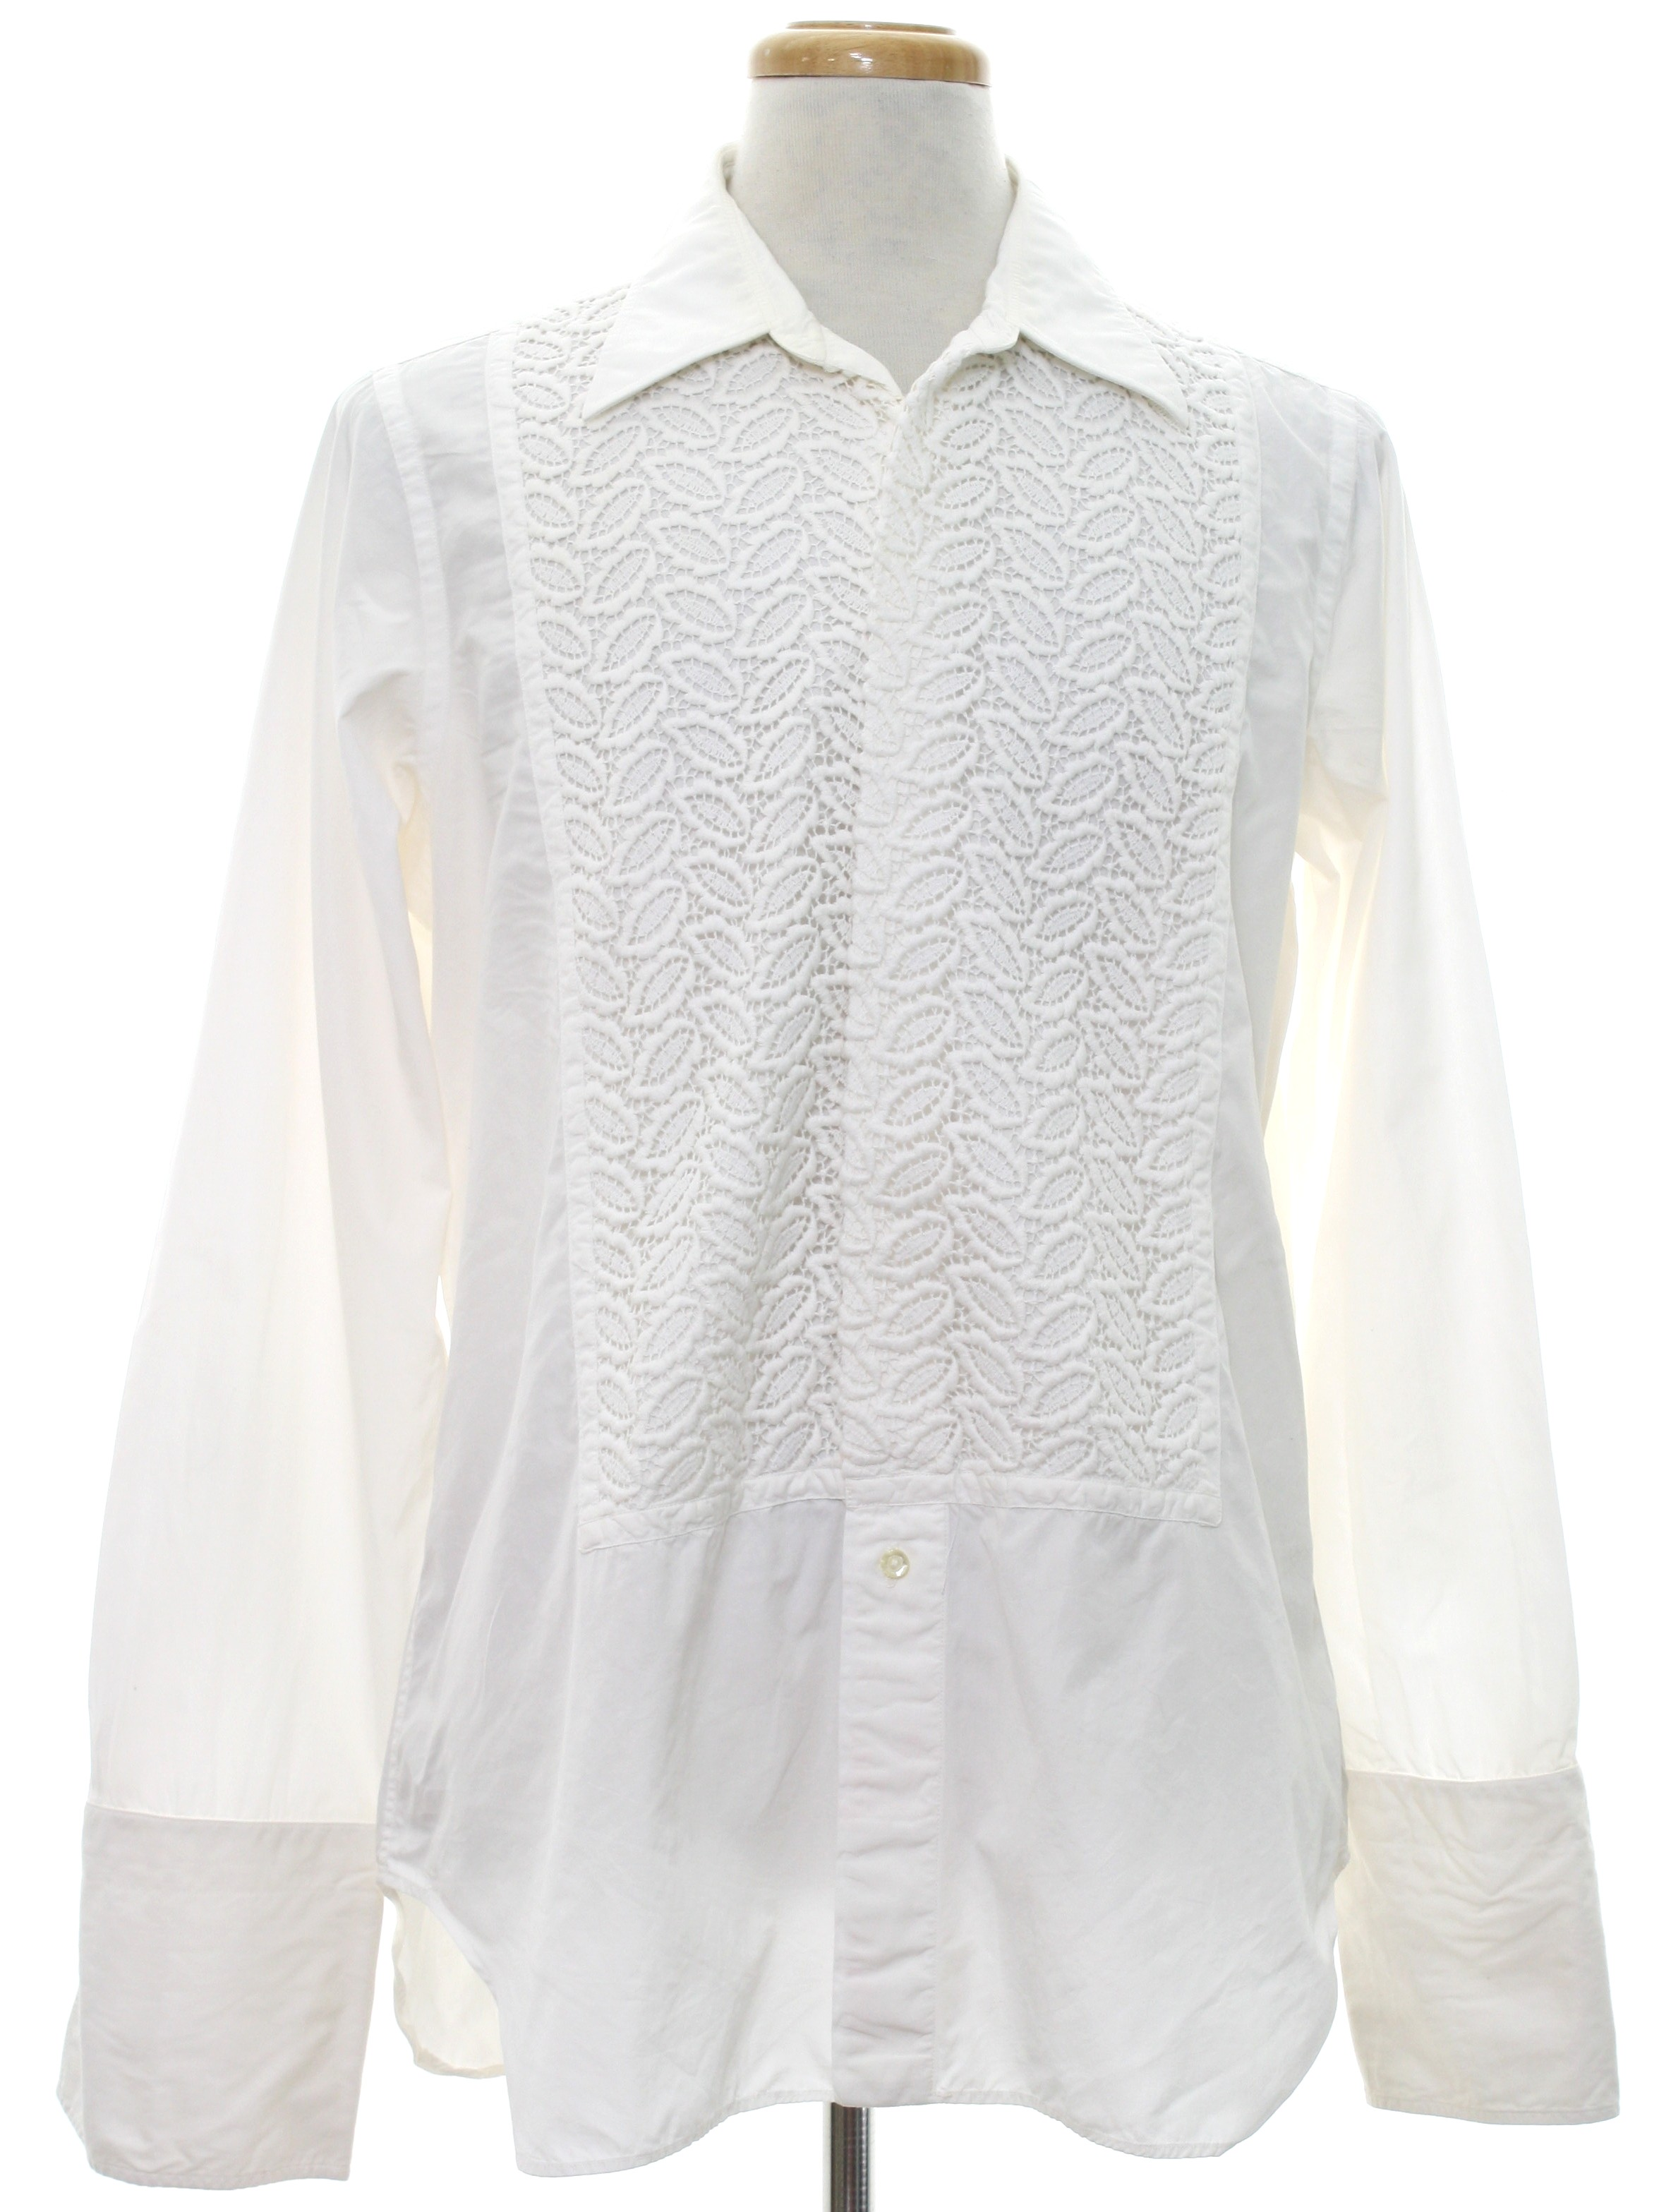 Vintage Nat Wise 1970s Shirt 70s Nat Wise Mens White